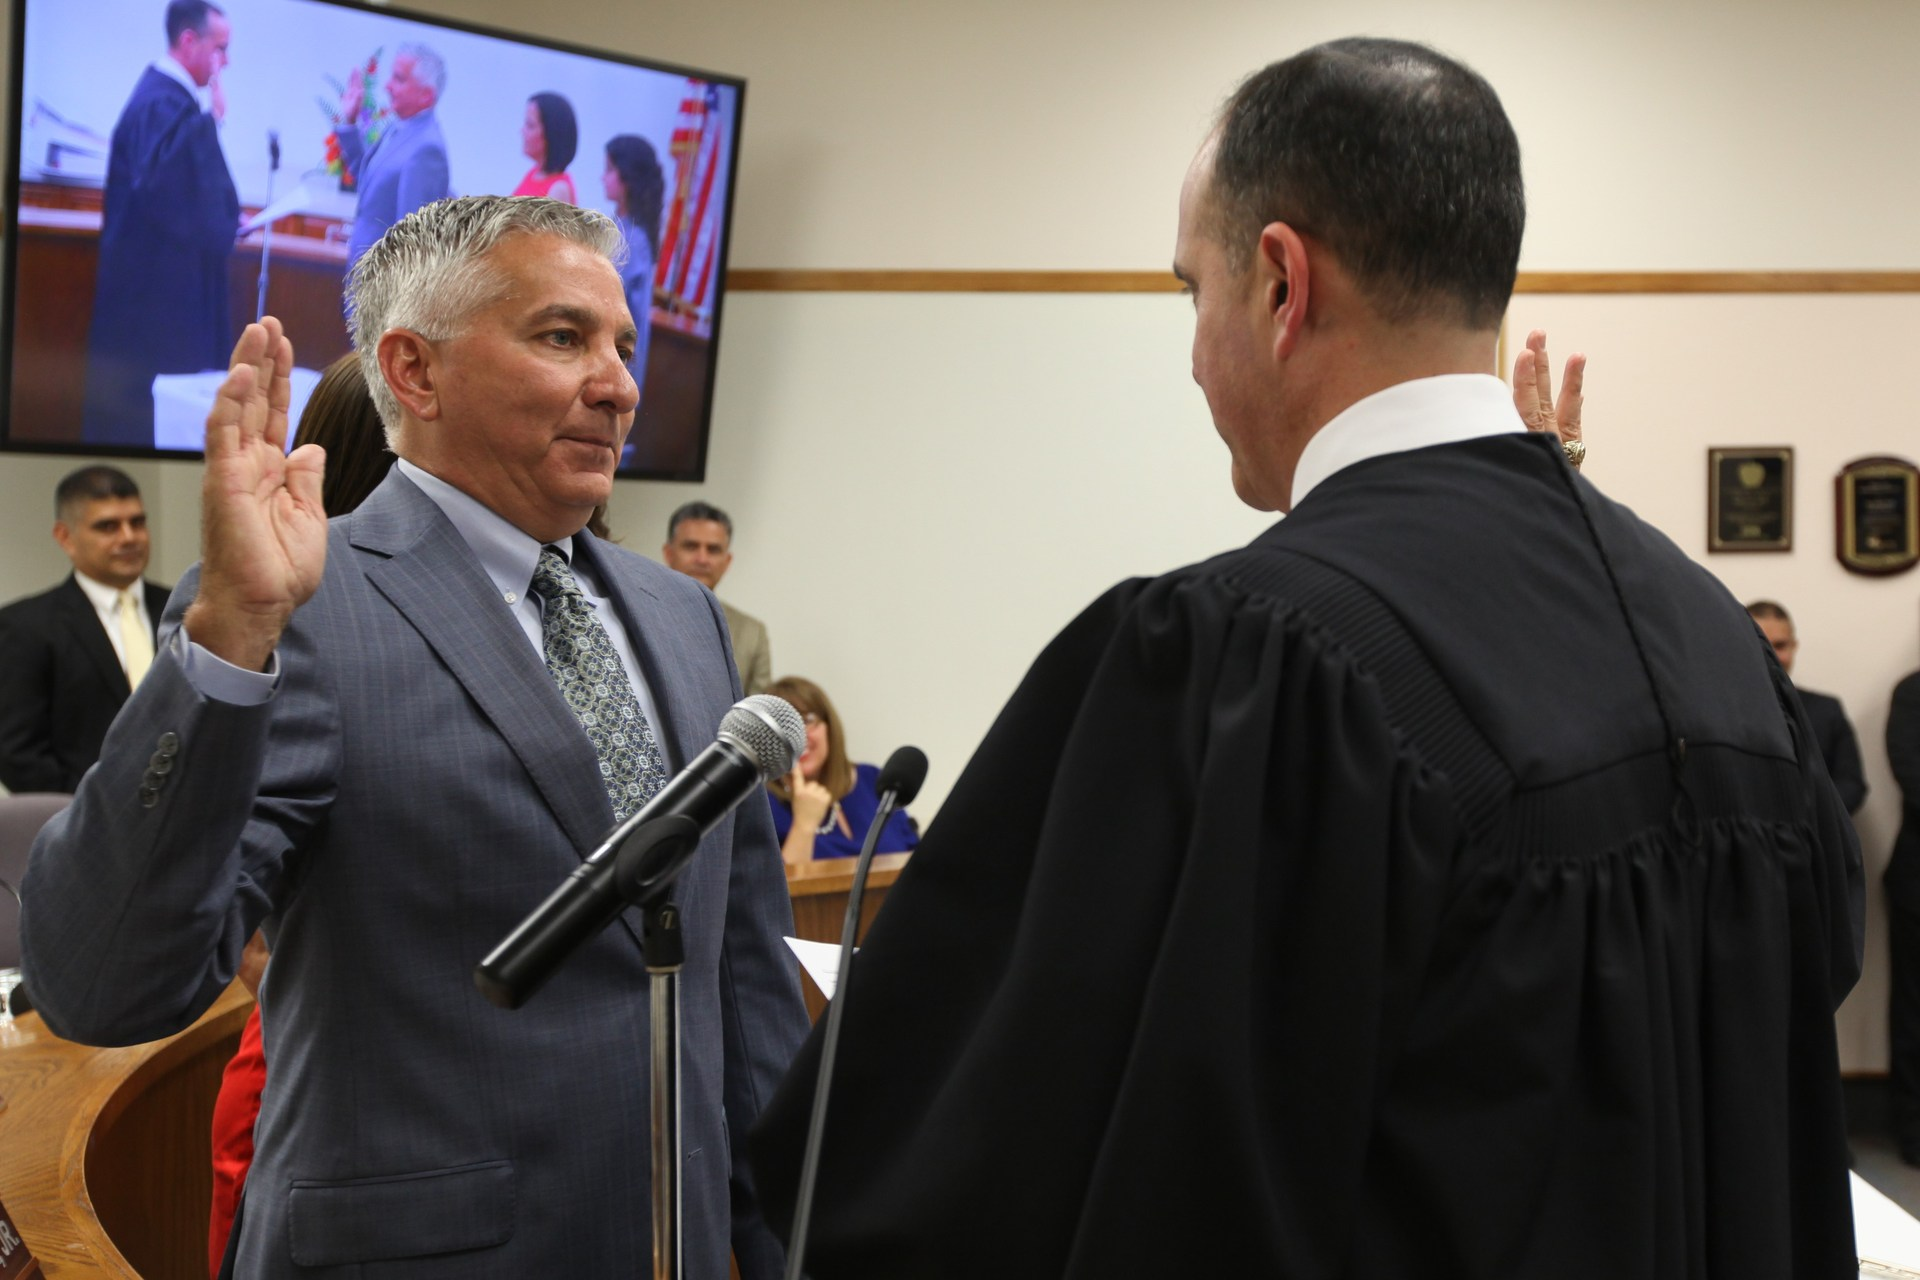 Mr. Vela swearing in